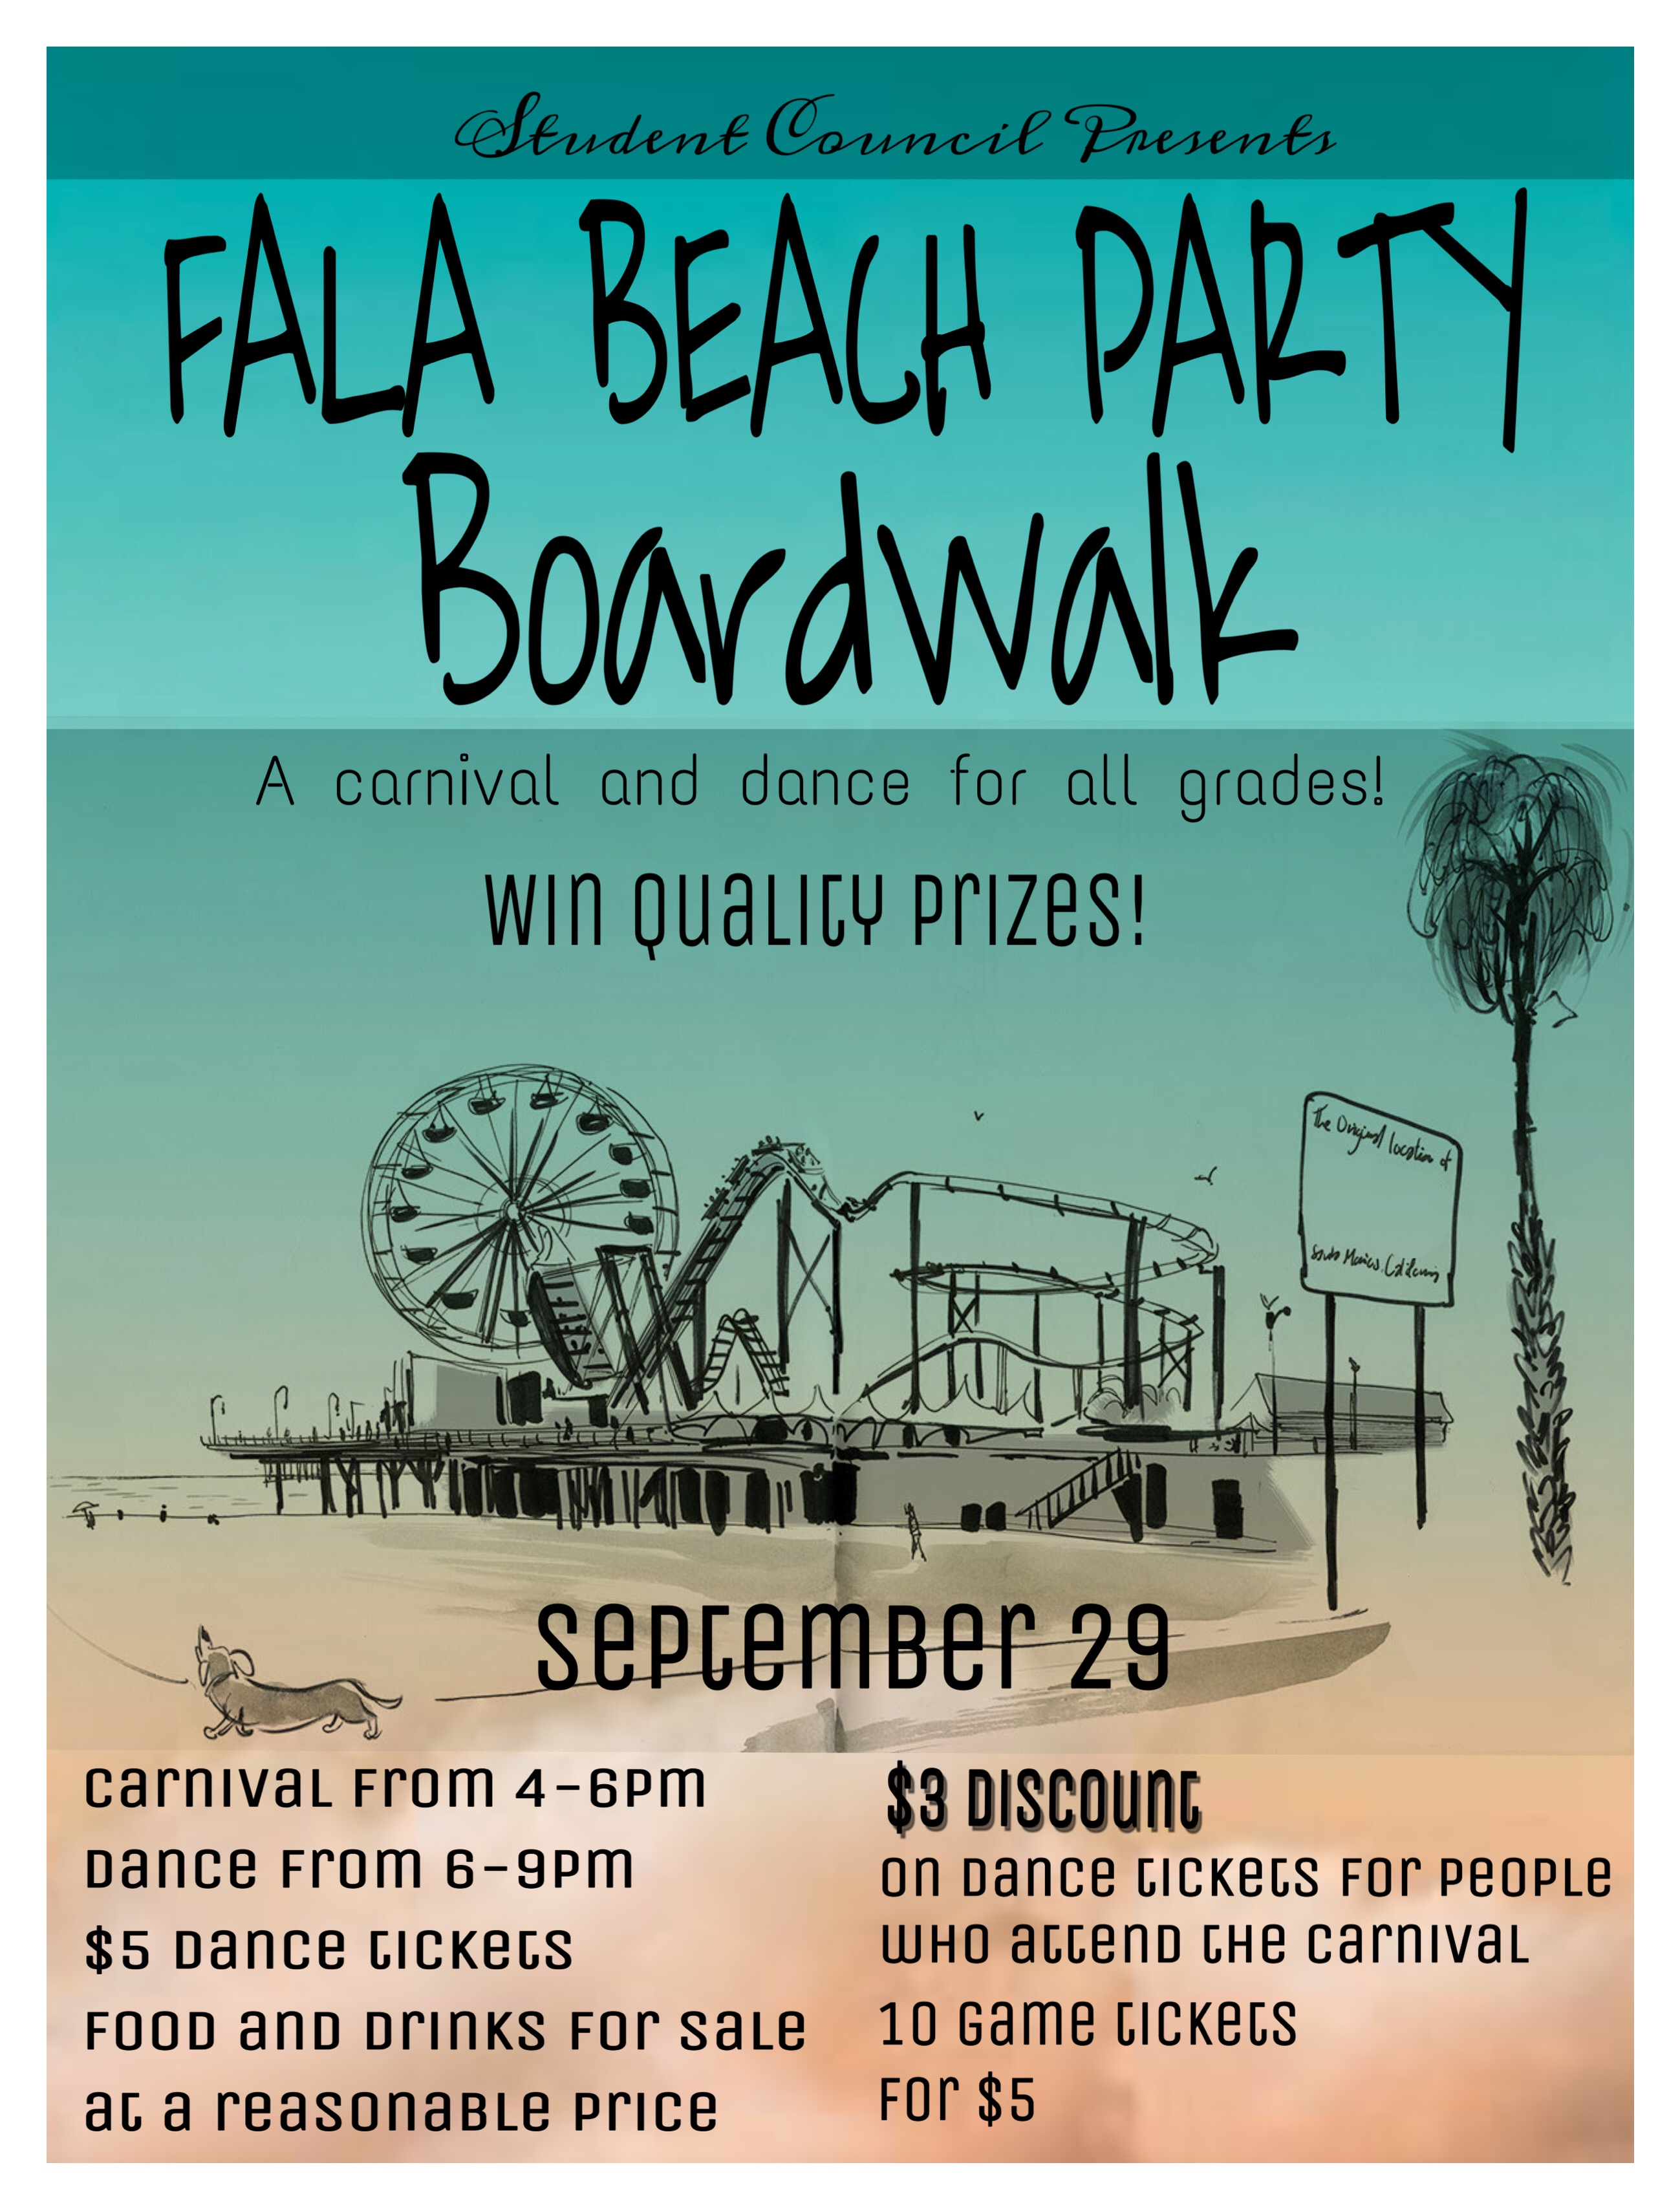 FALA's First Dance And Carnival Is Coming!